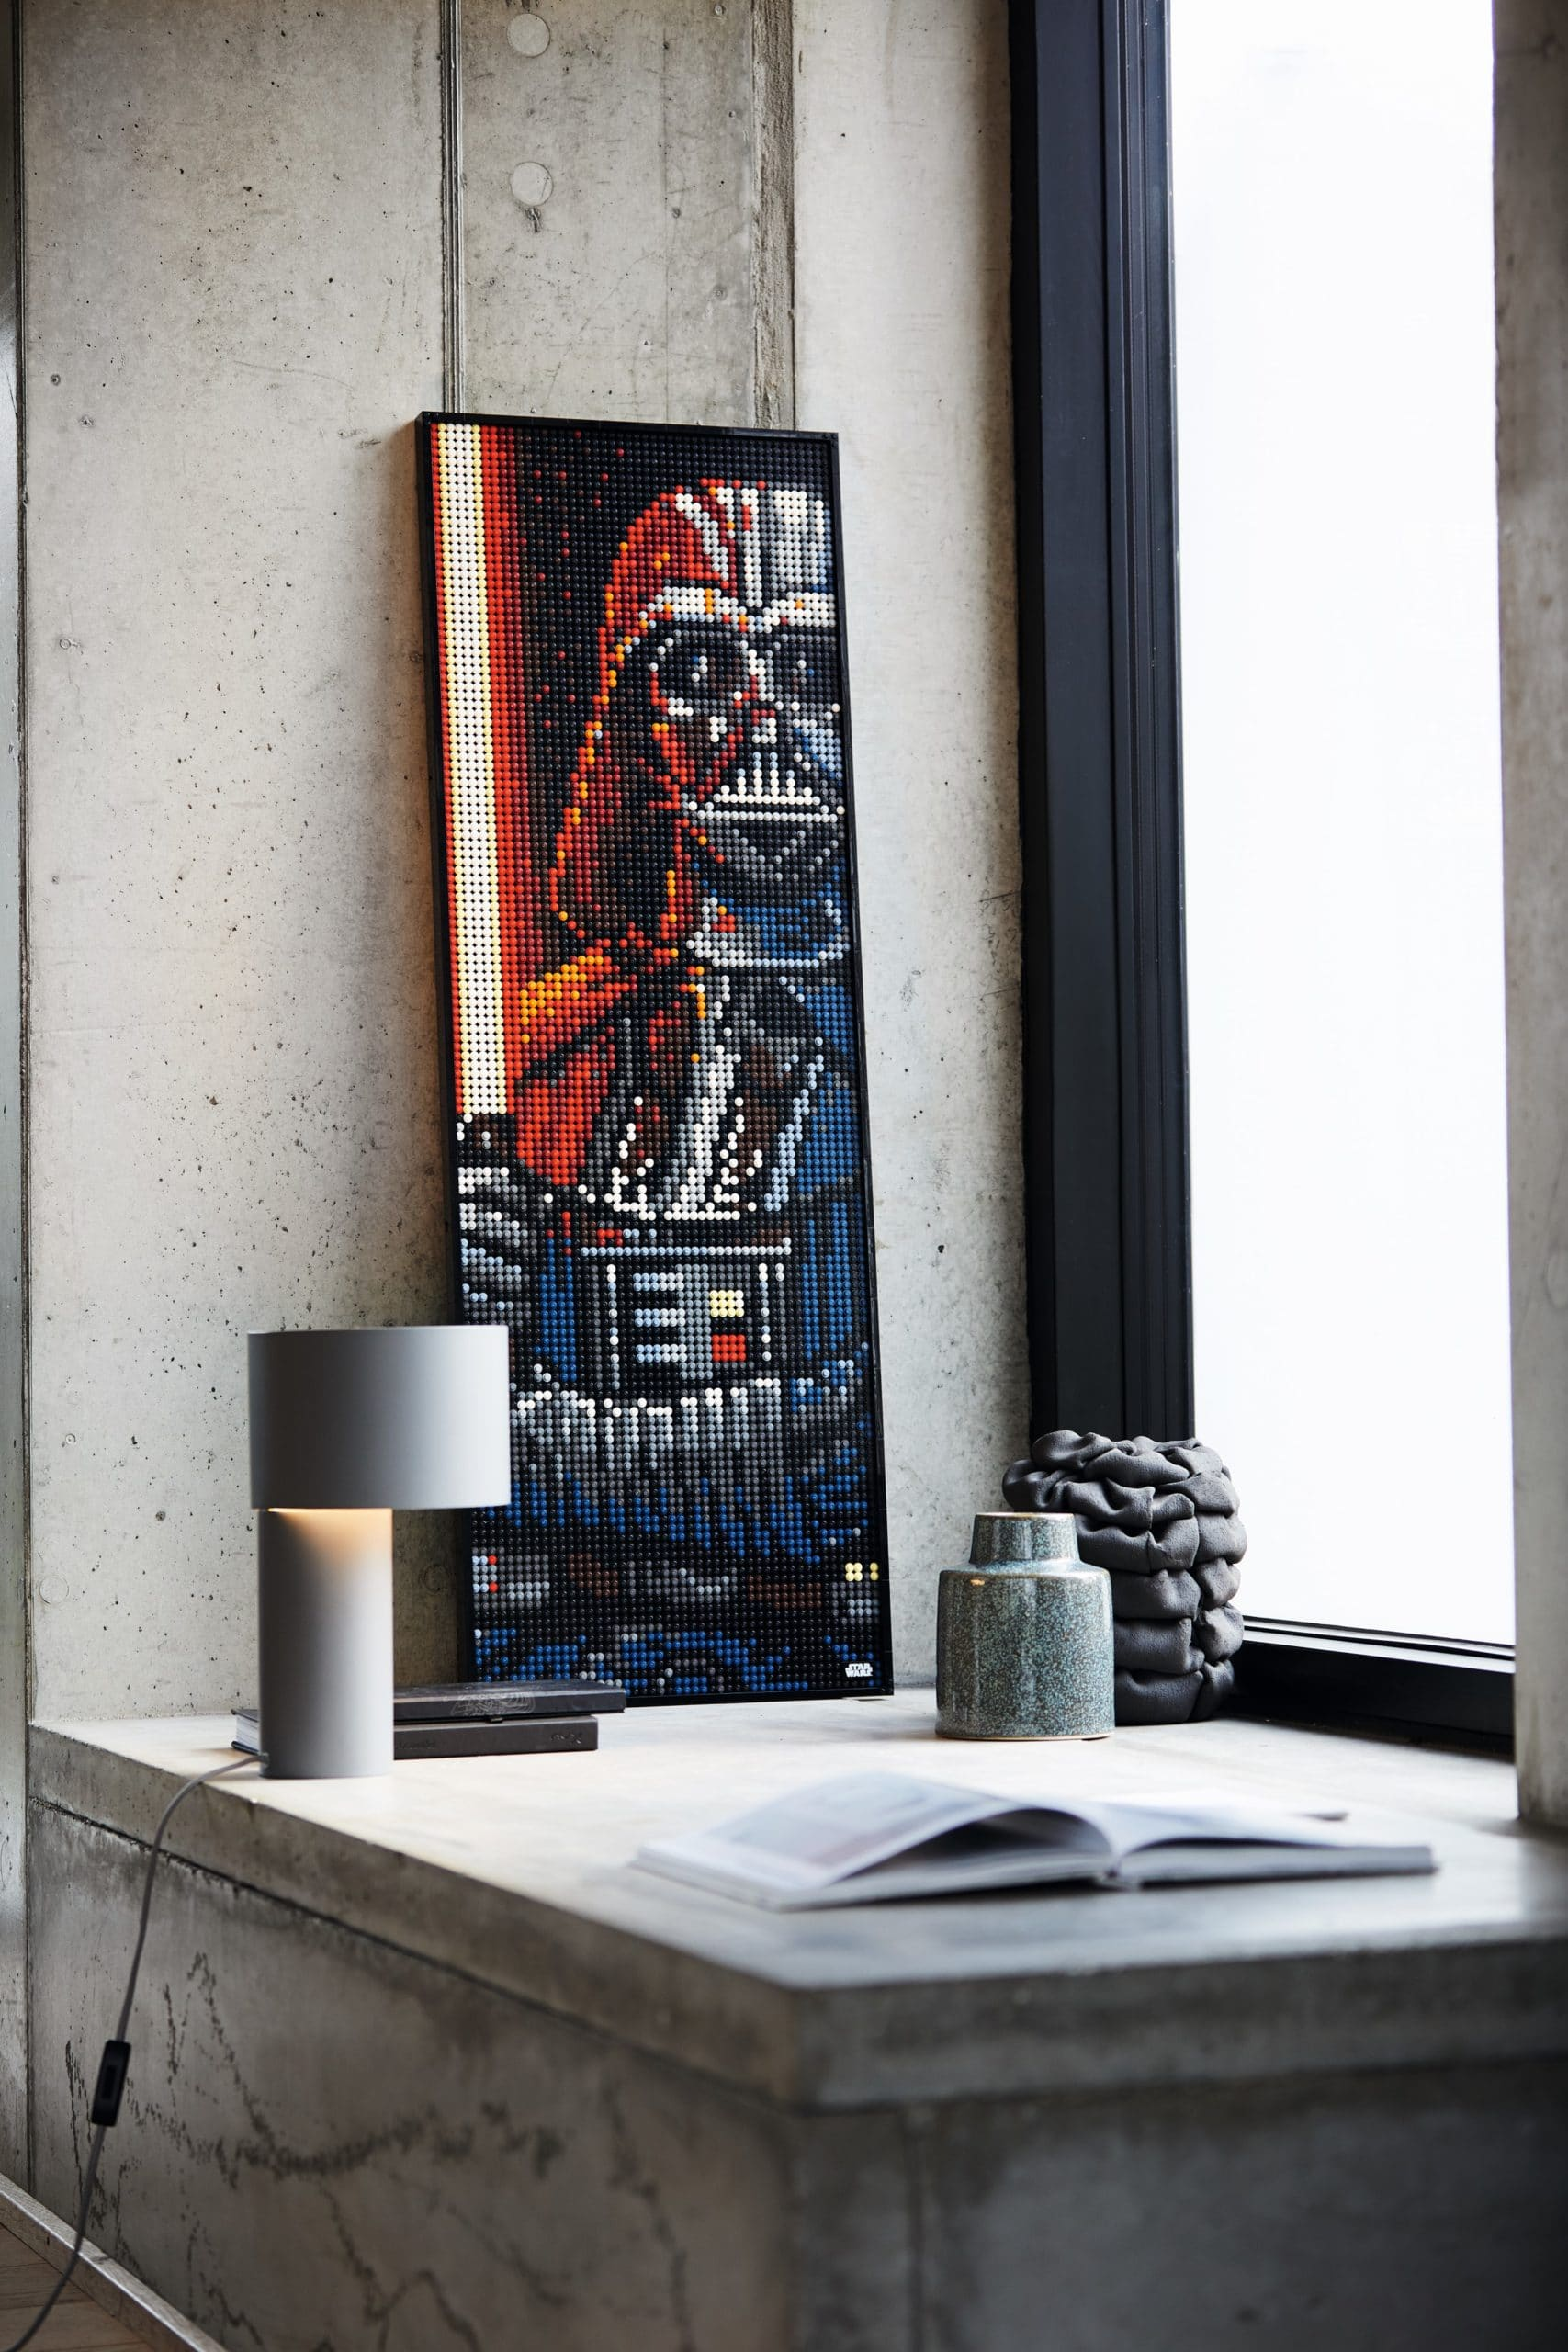 LEGO Art lets you create portraits of Iron Man, Darth Vader, The Beatles, and more 21